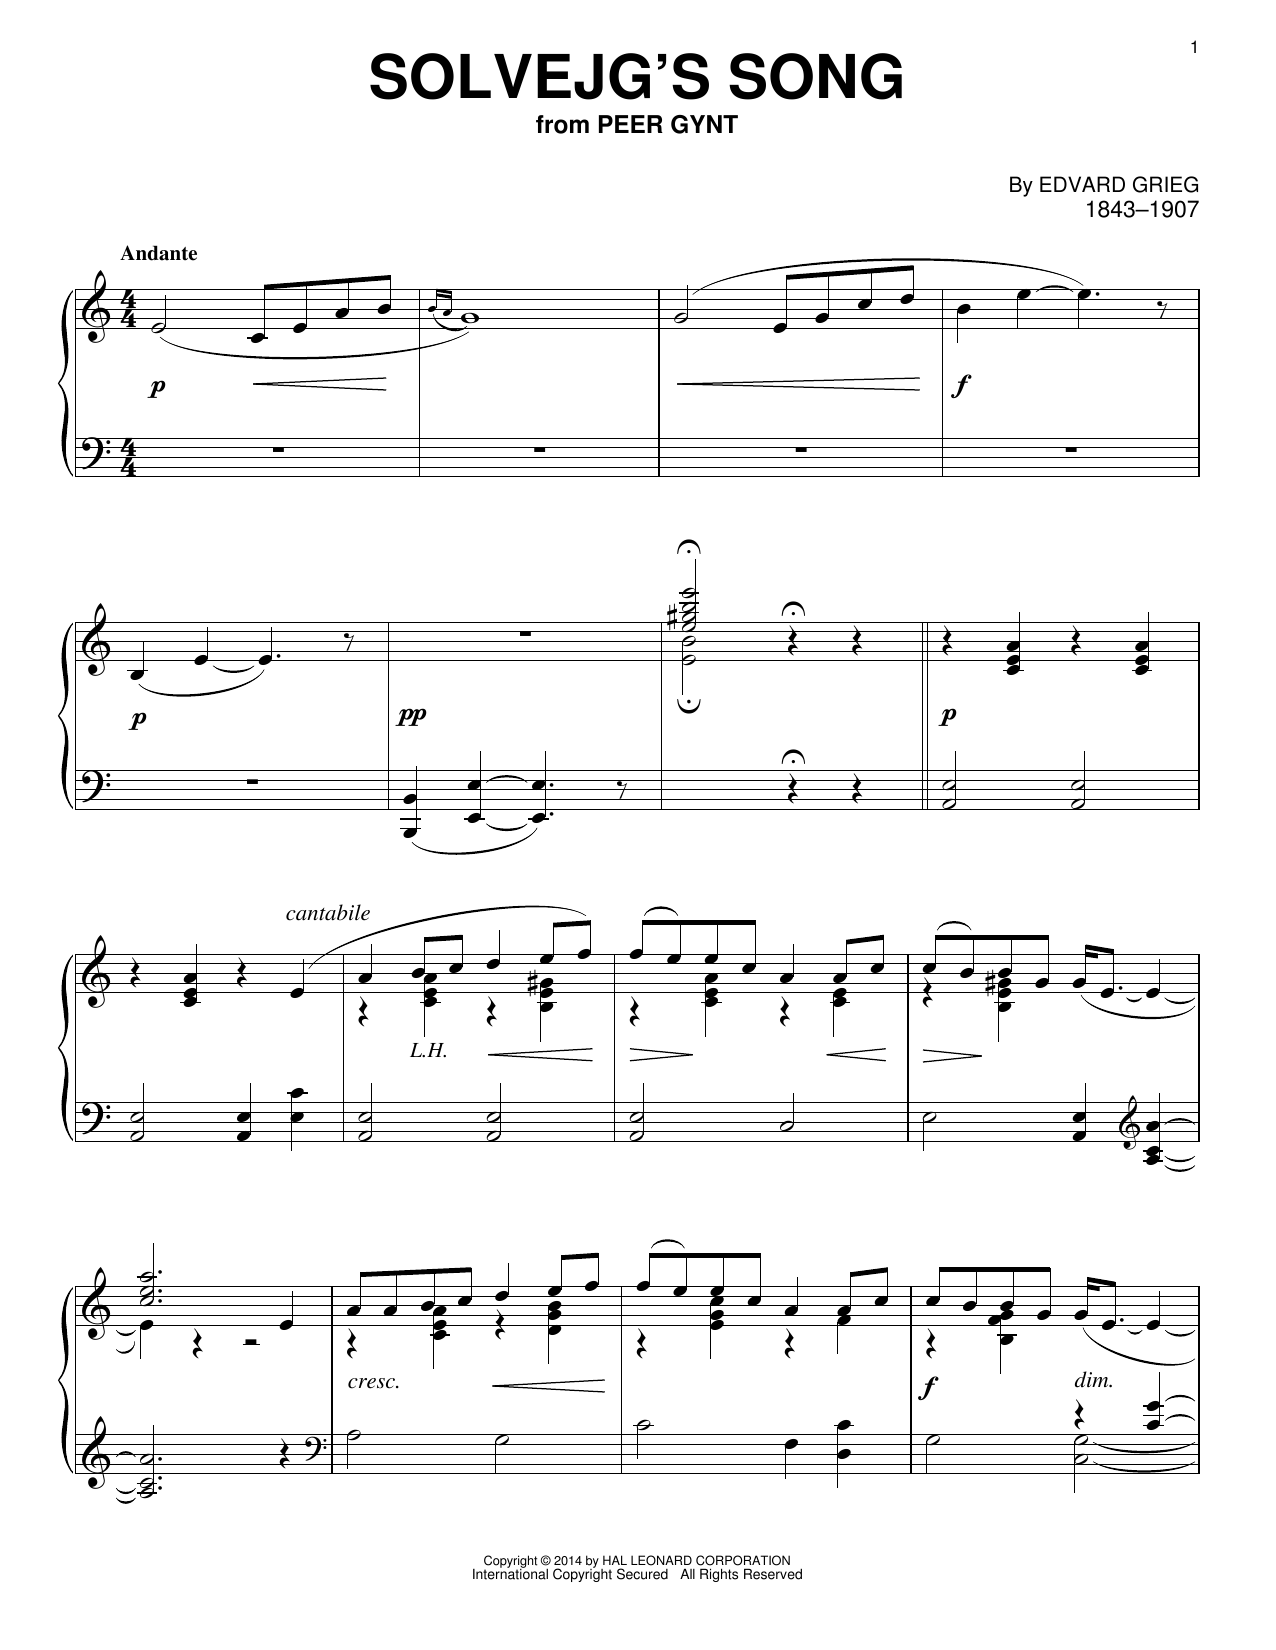 Solvejg's Song Sheet Music